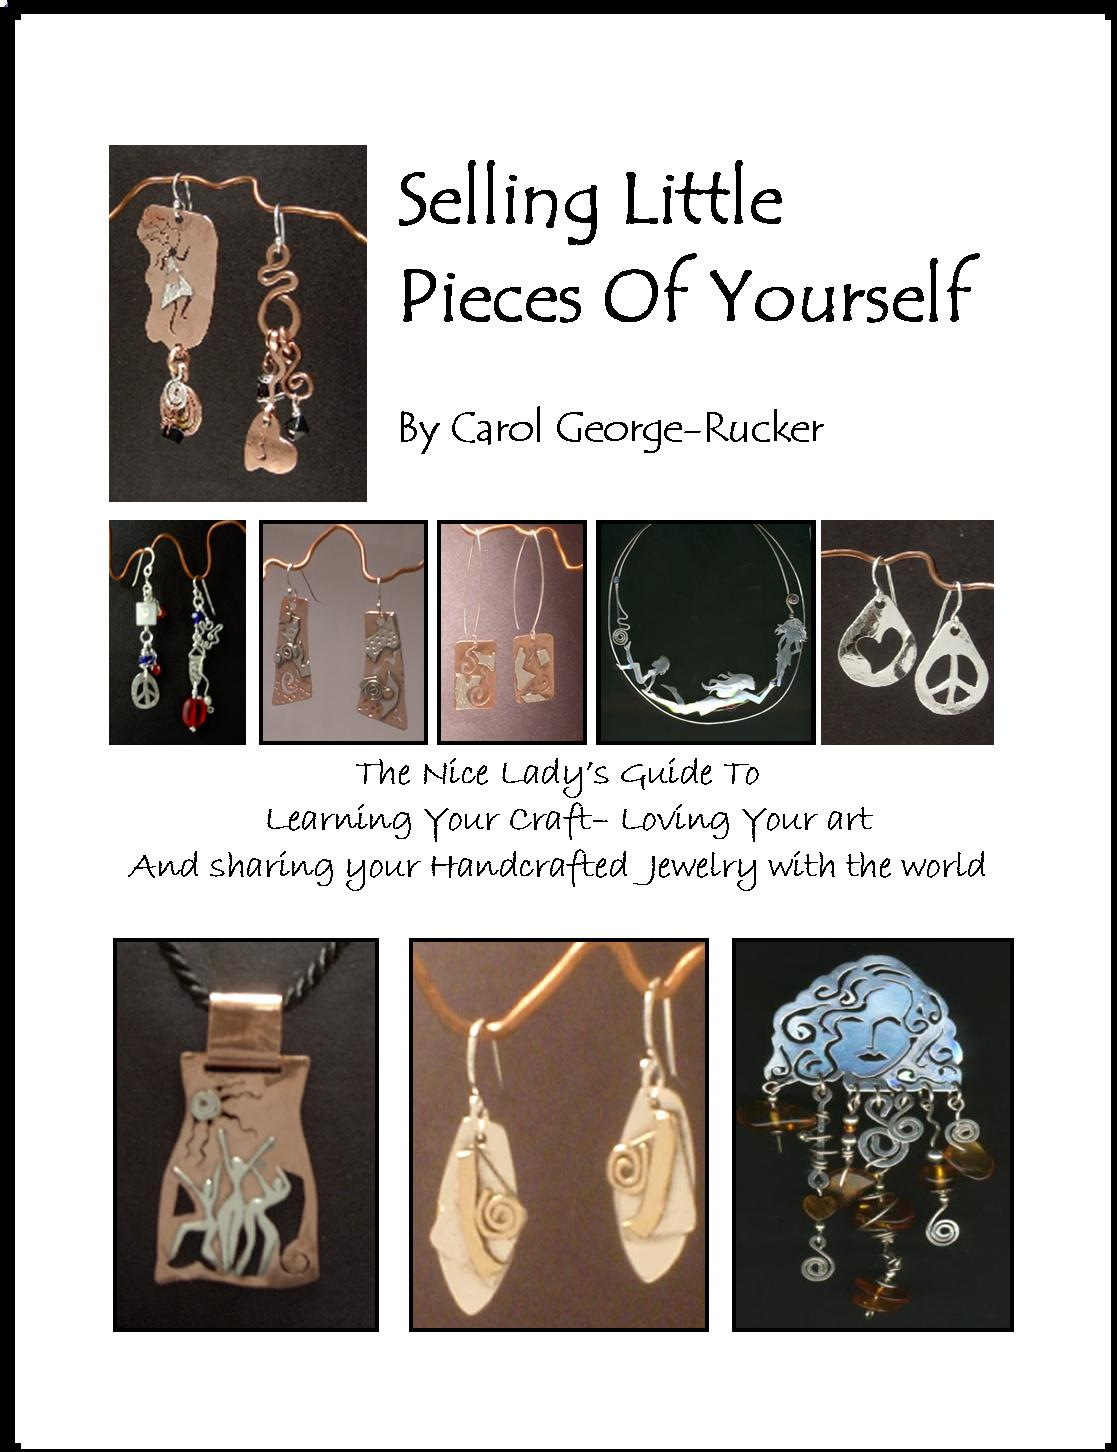 Selling Little Pieces Of Yourself